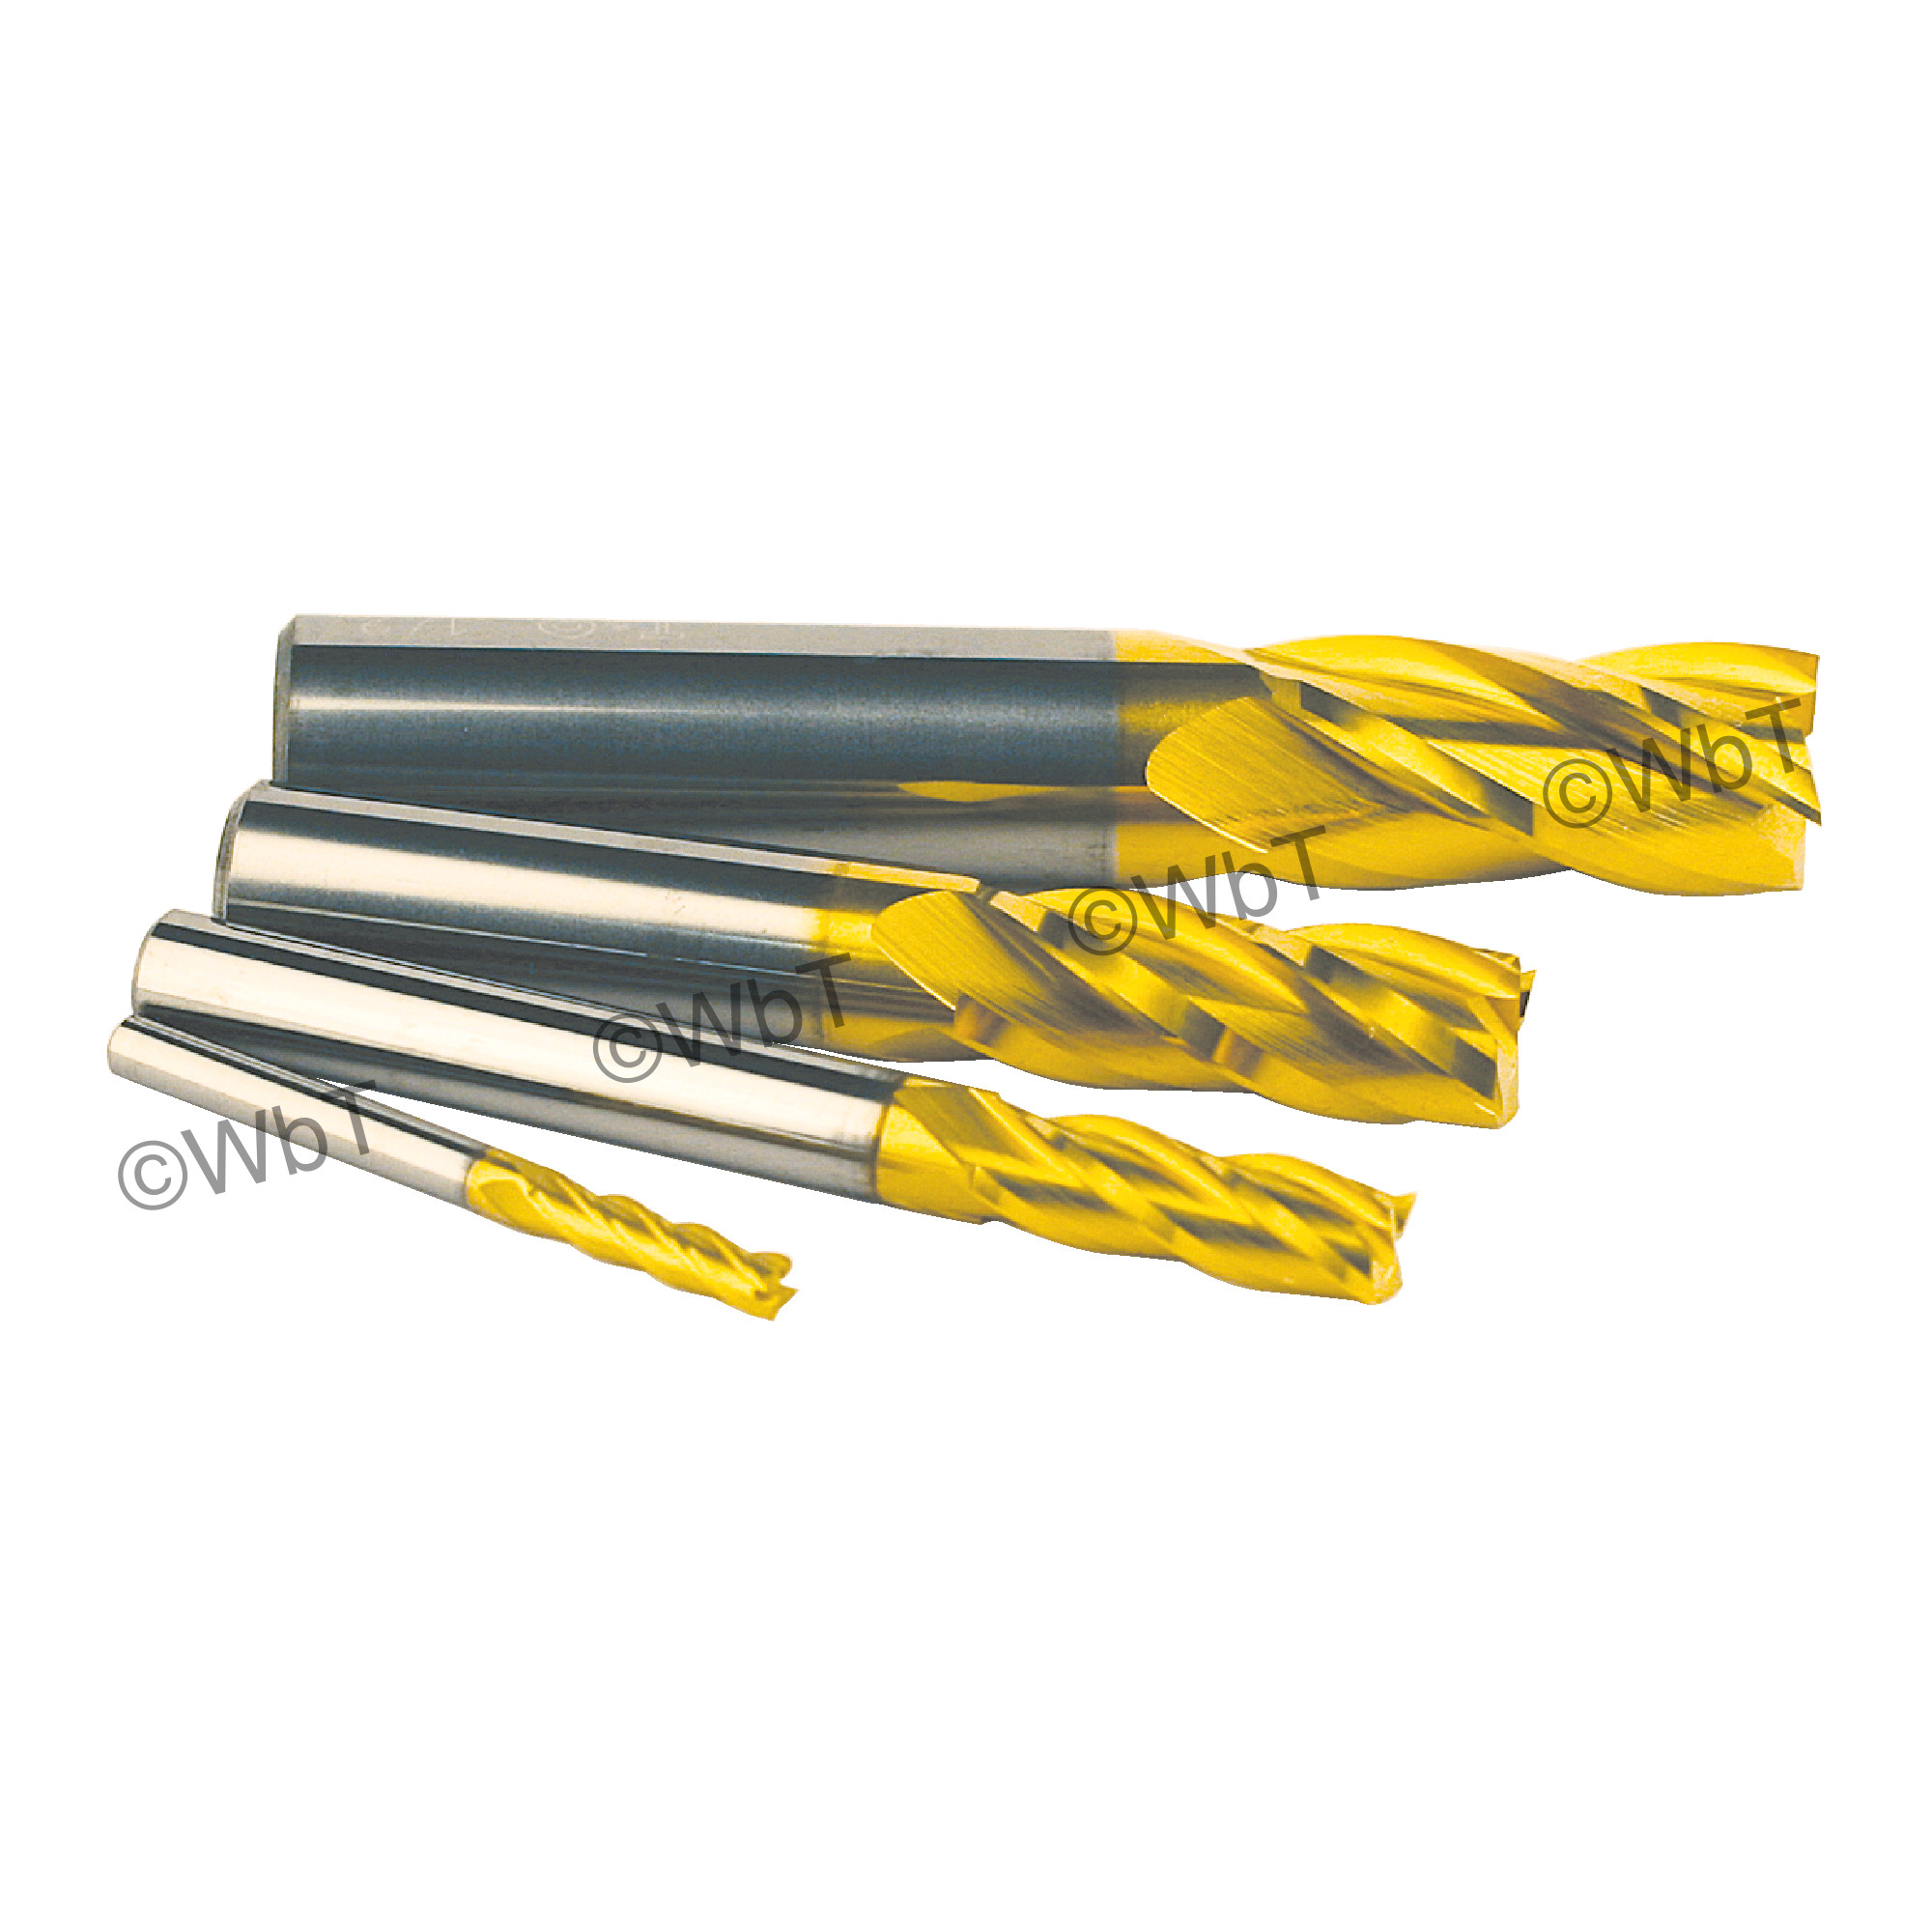 4 Piece 4 Flute SUPERCEED® Solid Carbide Coated Single End Mill Sets